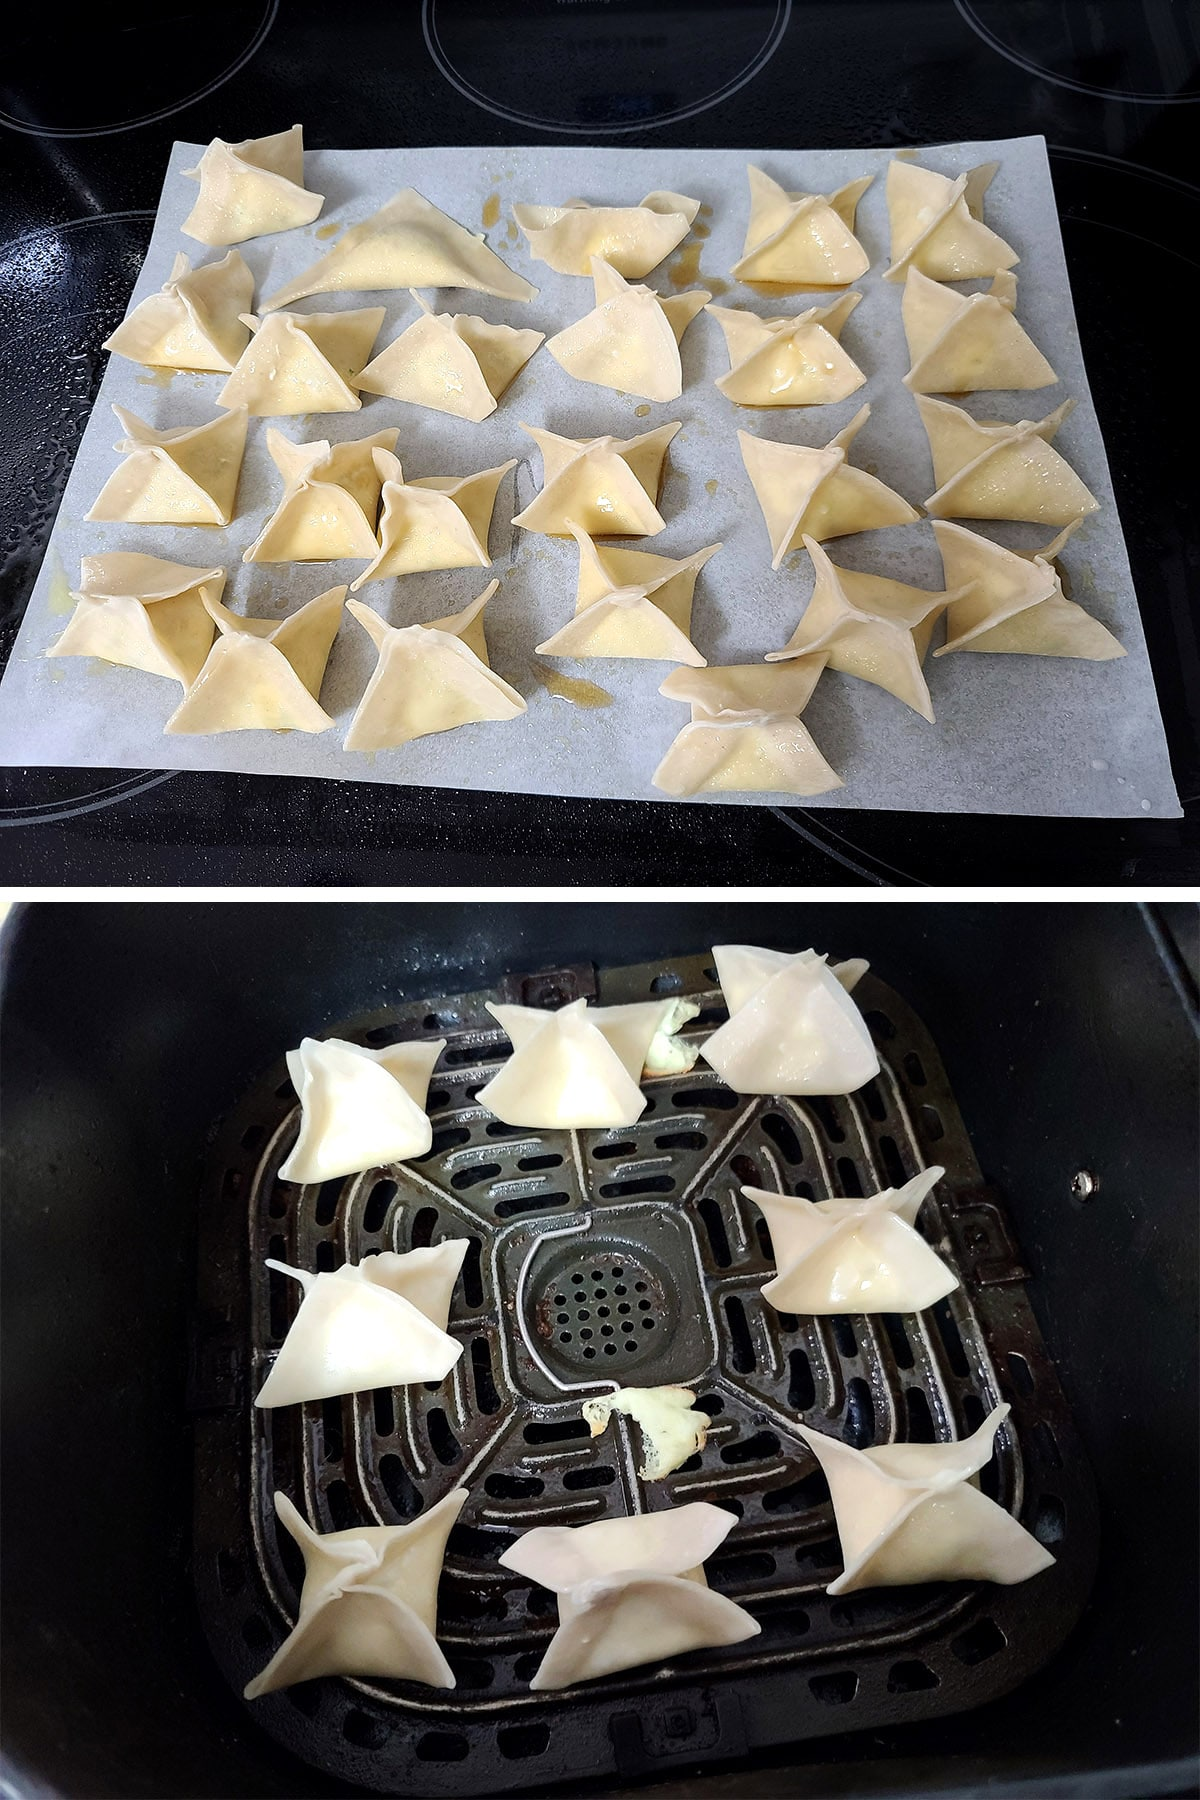 24 folded cream cheese wontons on a parchment sheet, and 8 of them in an air fryer.